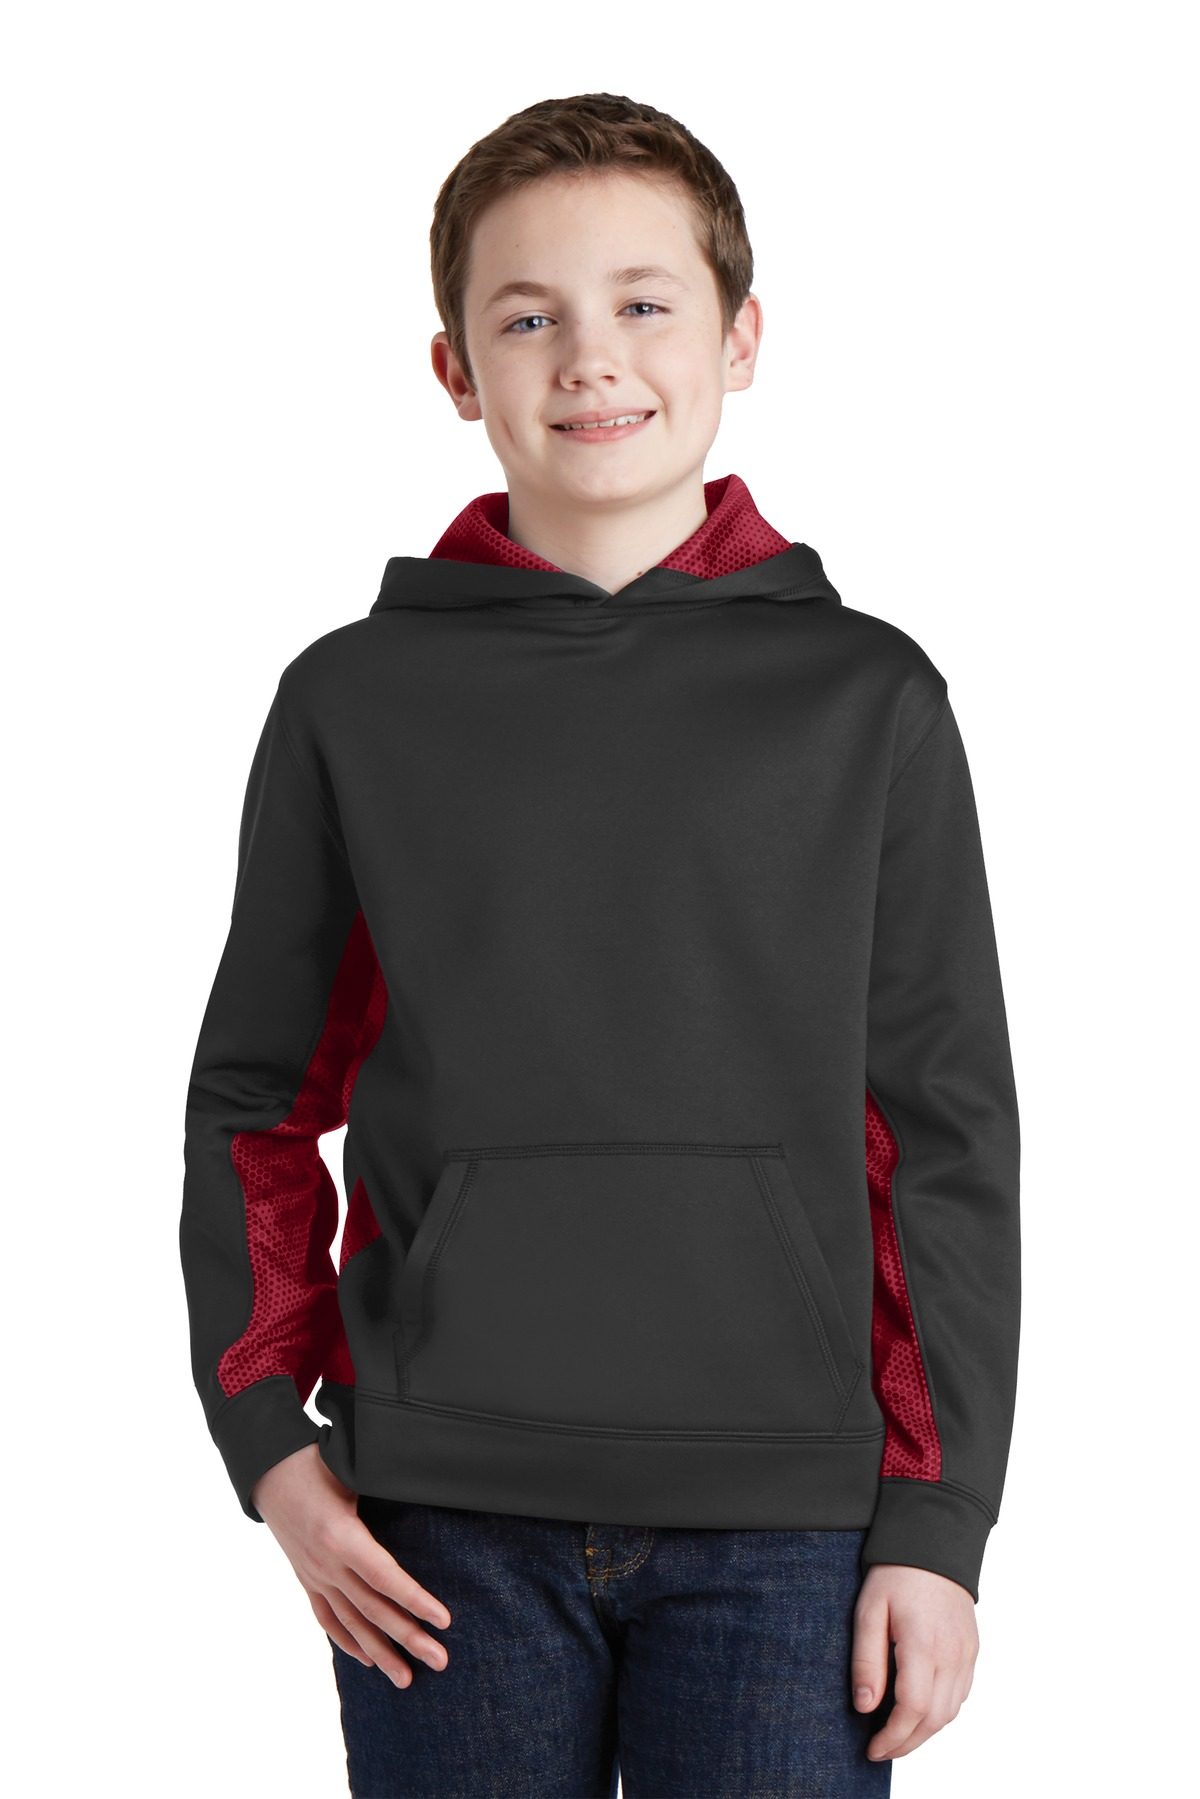 Sport-Tek  Youth Sport-Wick  YST239 - CamoHex Fleece ...